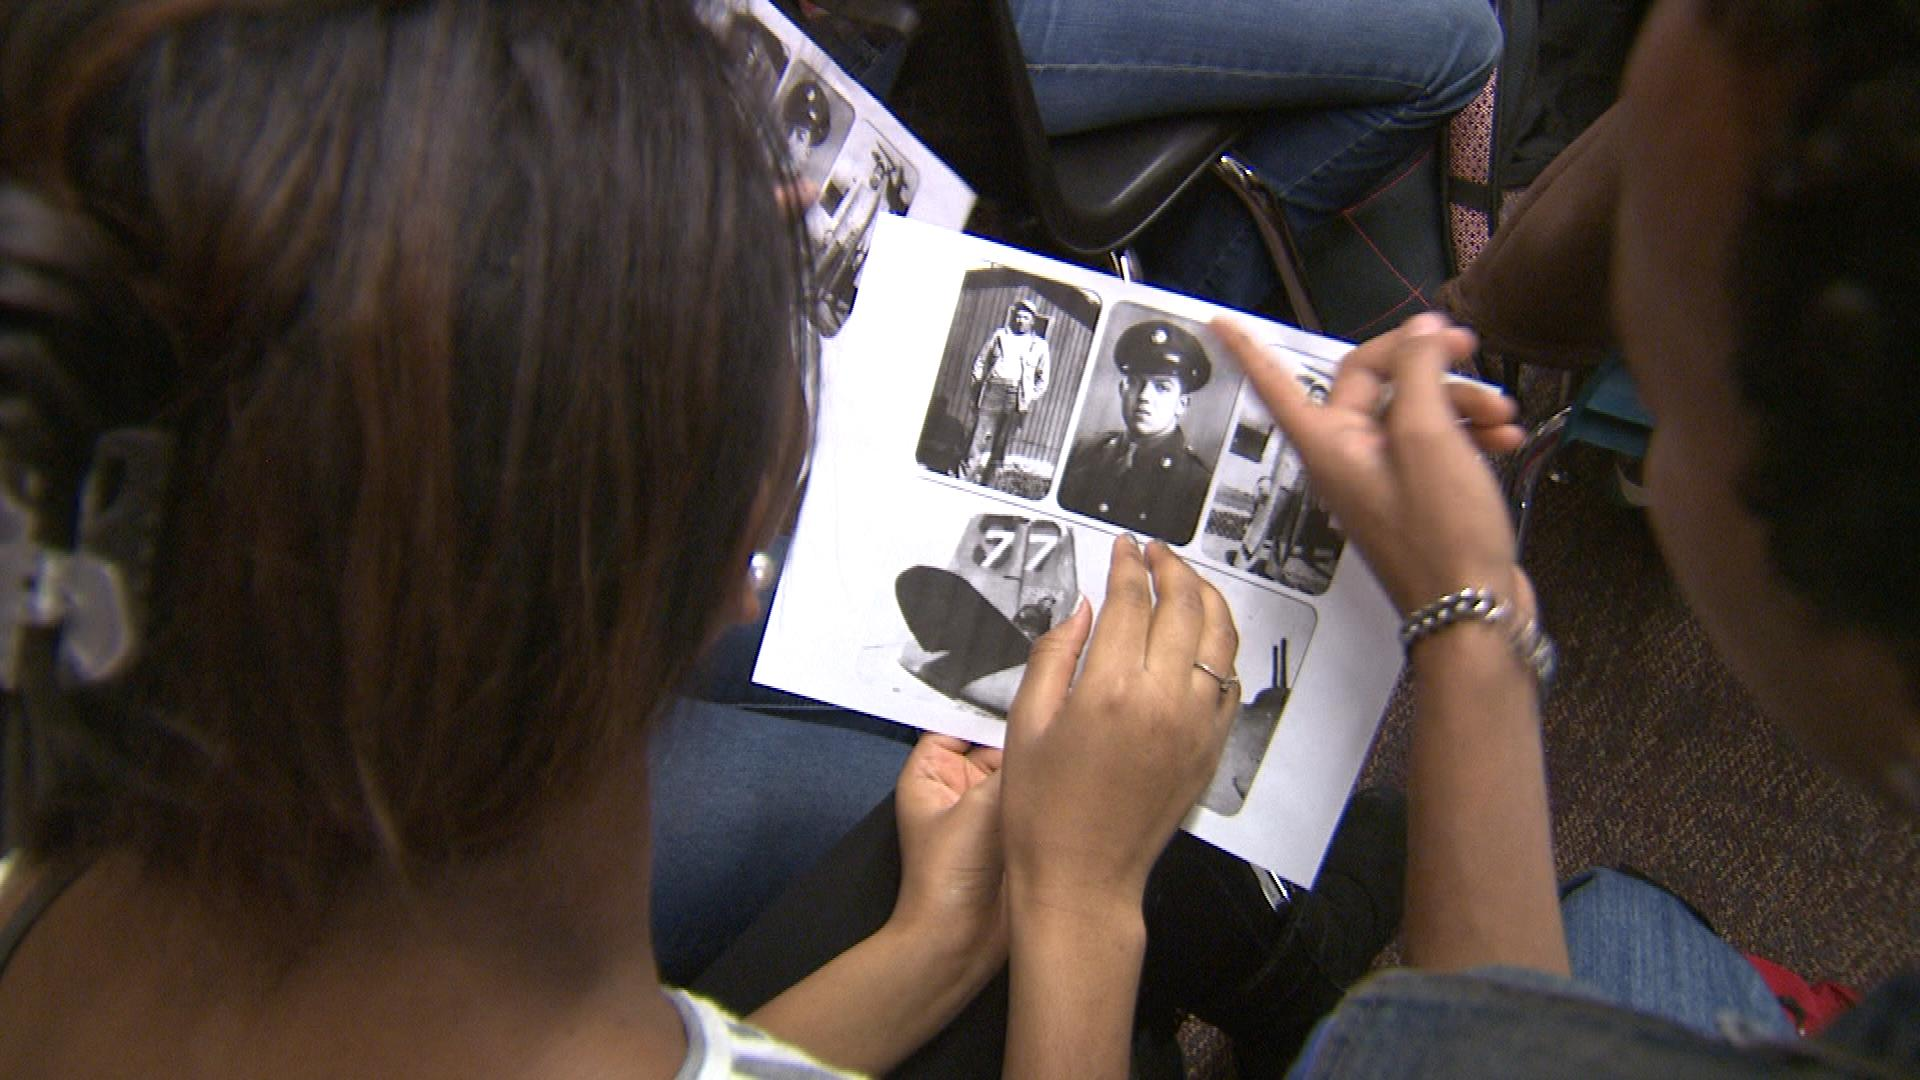 South High School students look at their guests' photos from World War II. (credit: CBS)